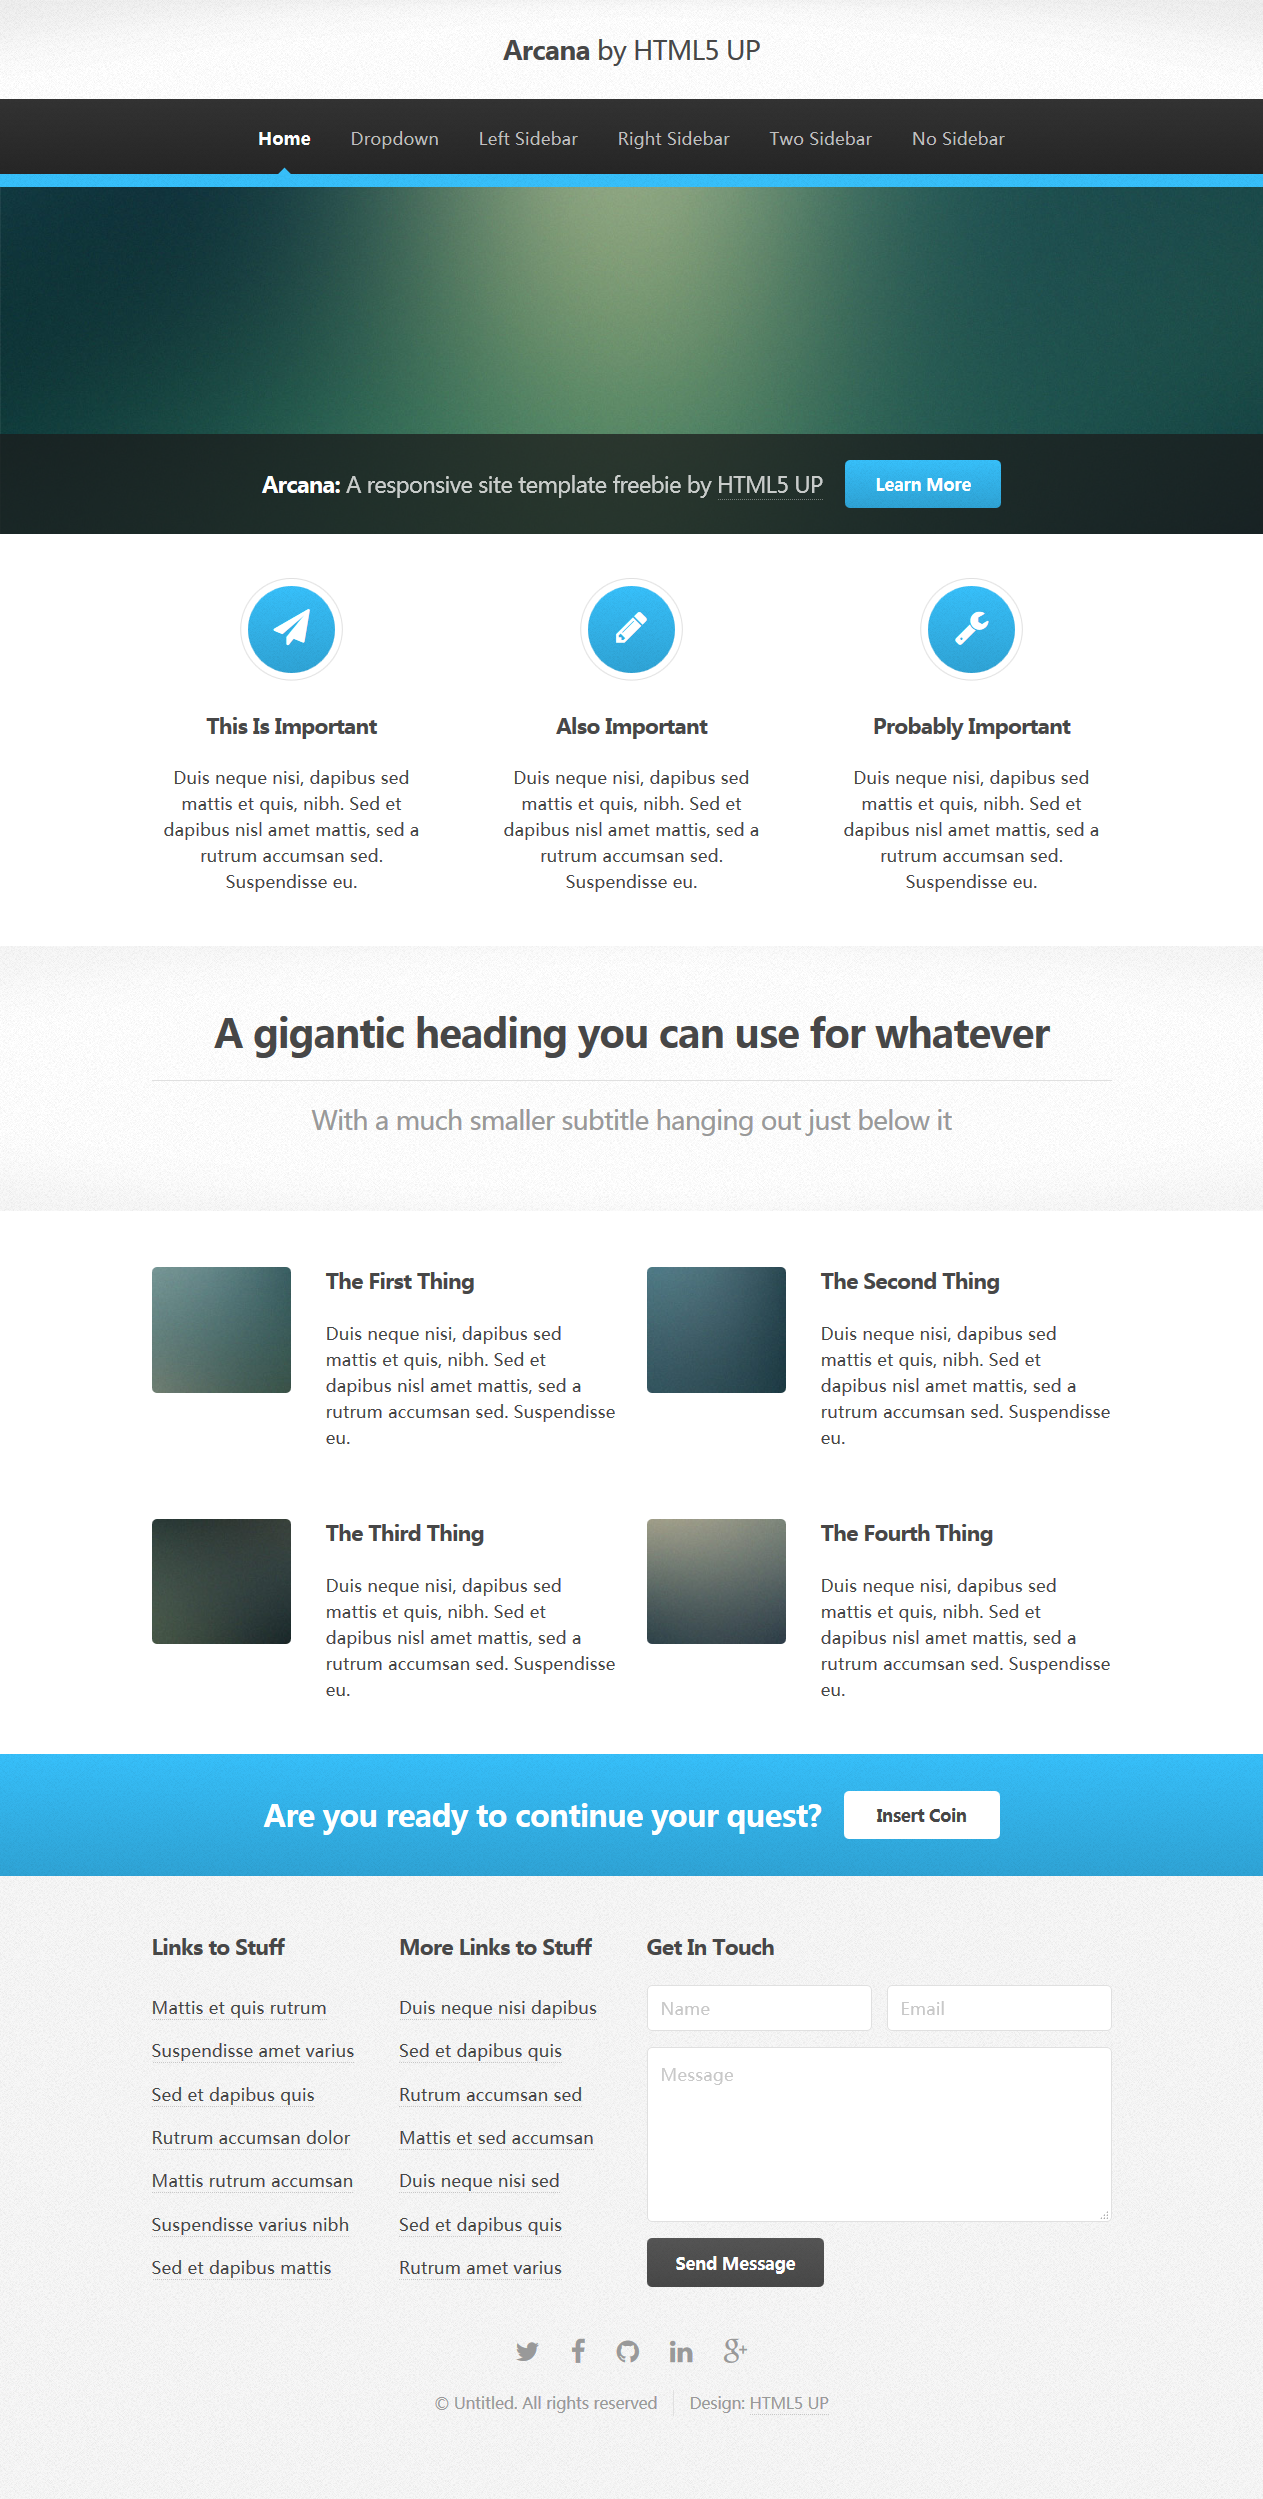 Arcana A responsive site template freebie by HTML5 UP